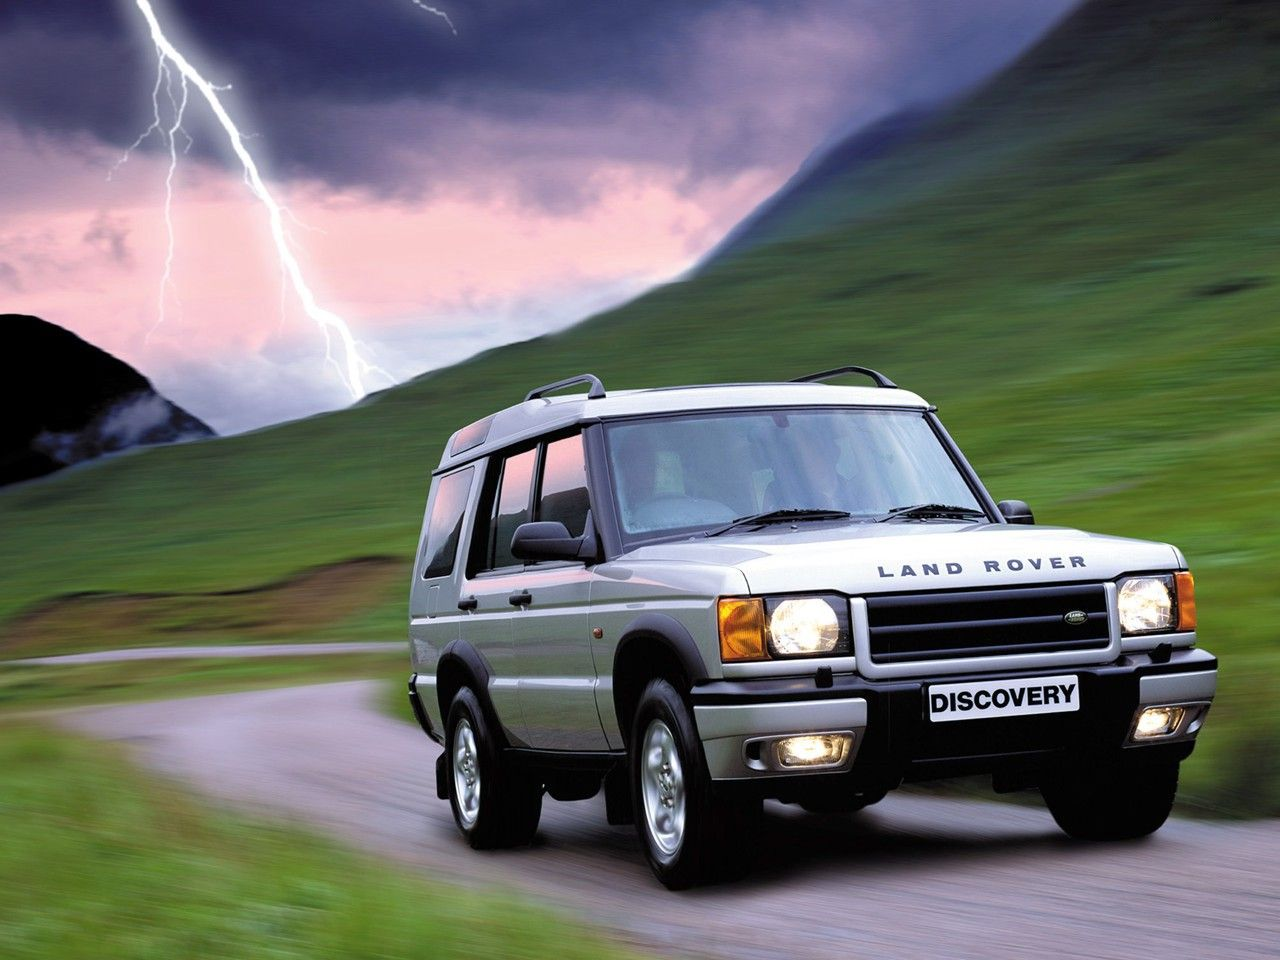 Land Rover Discovery Series II UKspec '19982003 in 2020